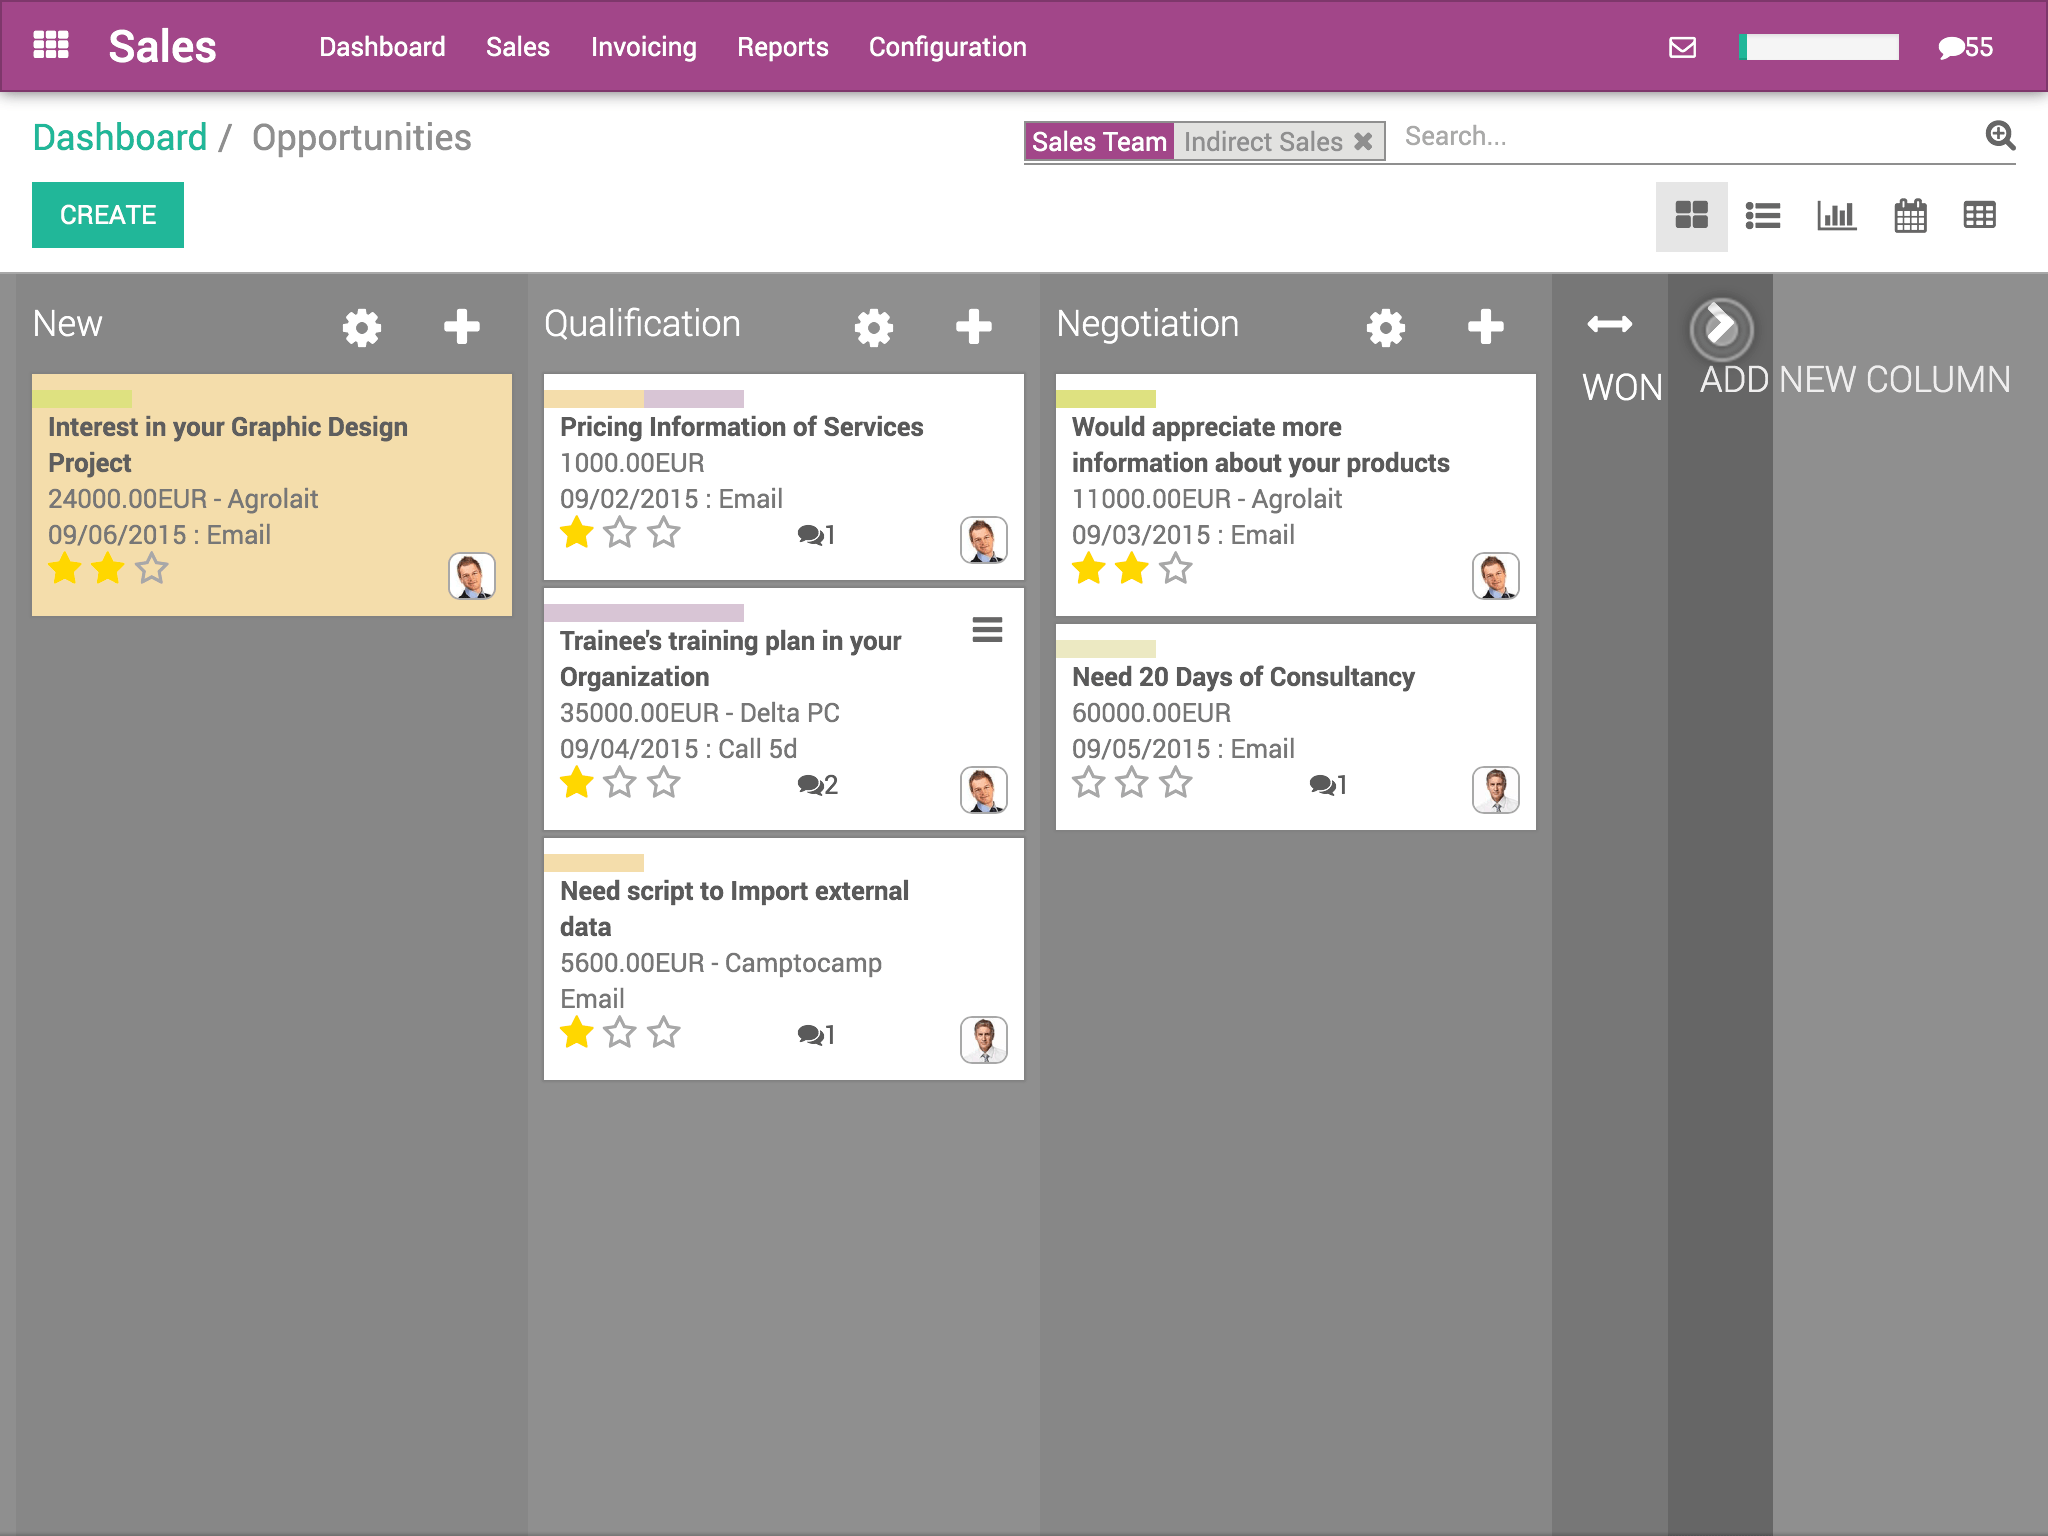 odoo sales dashboard.